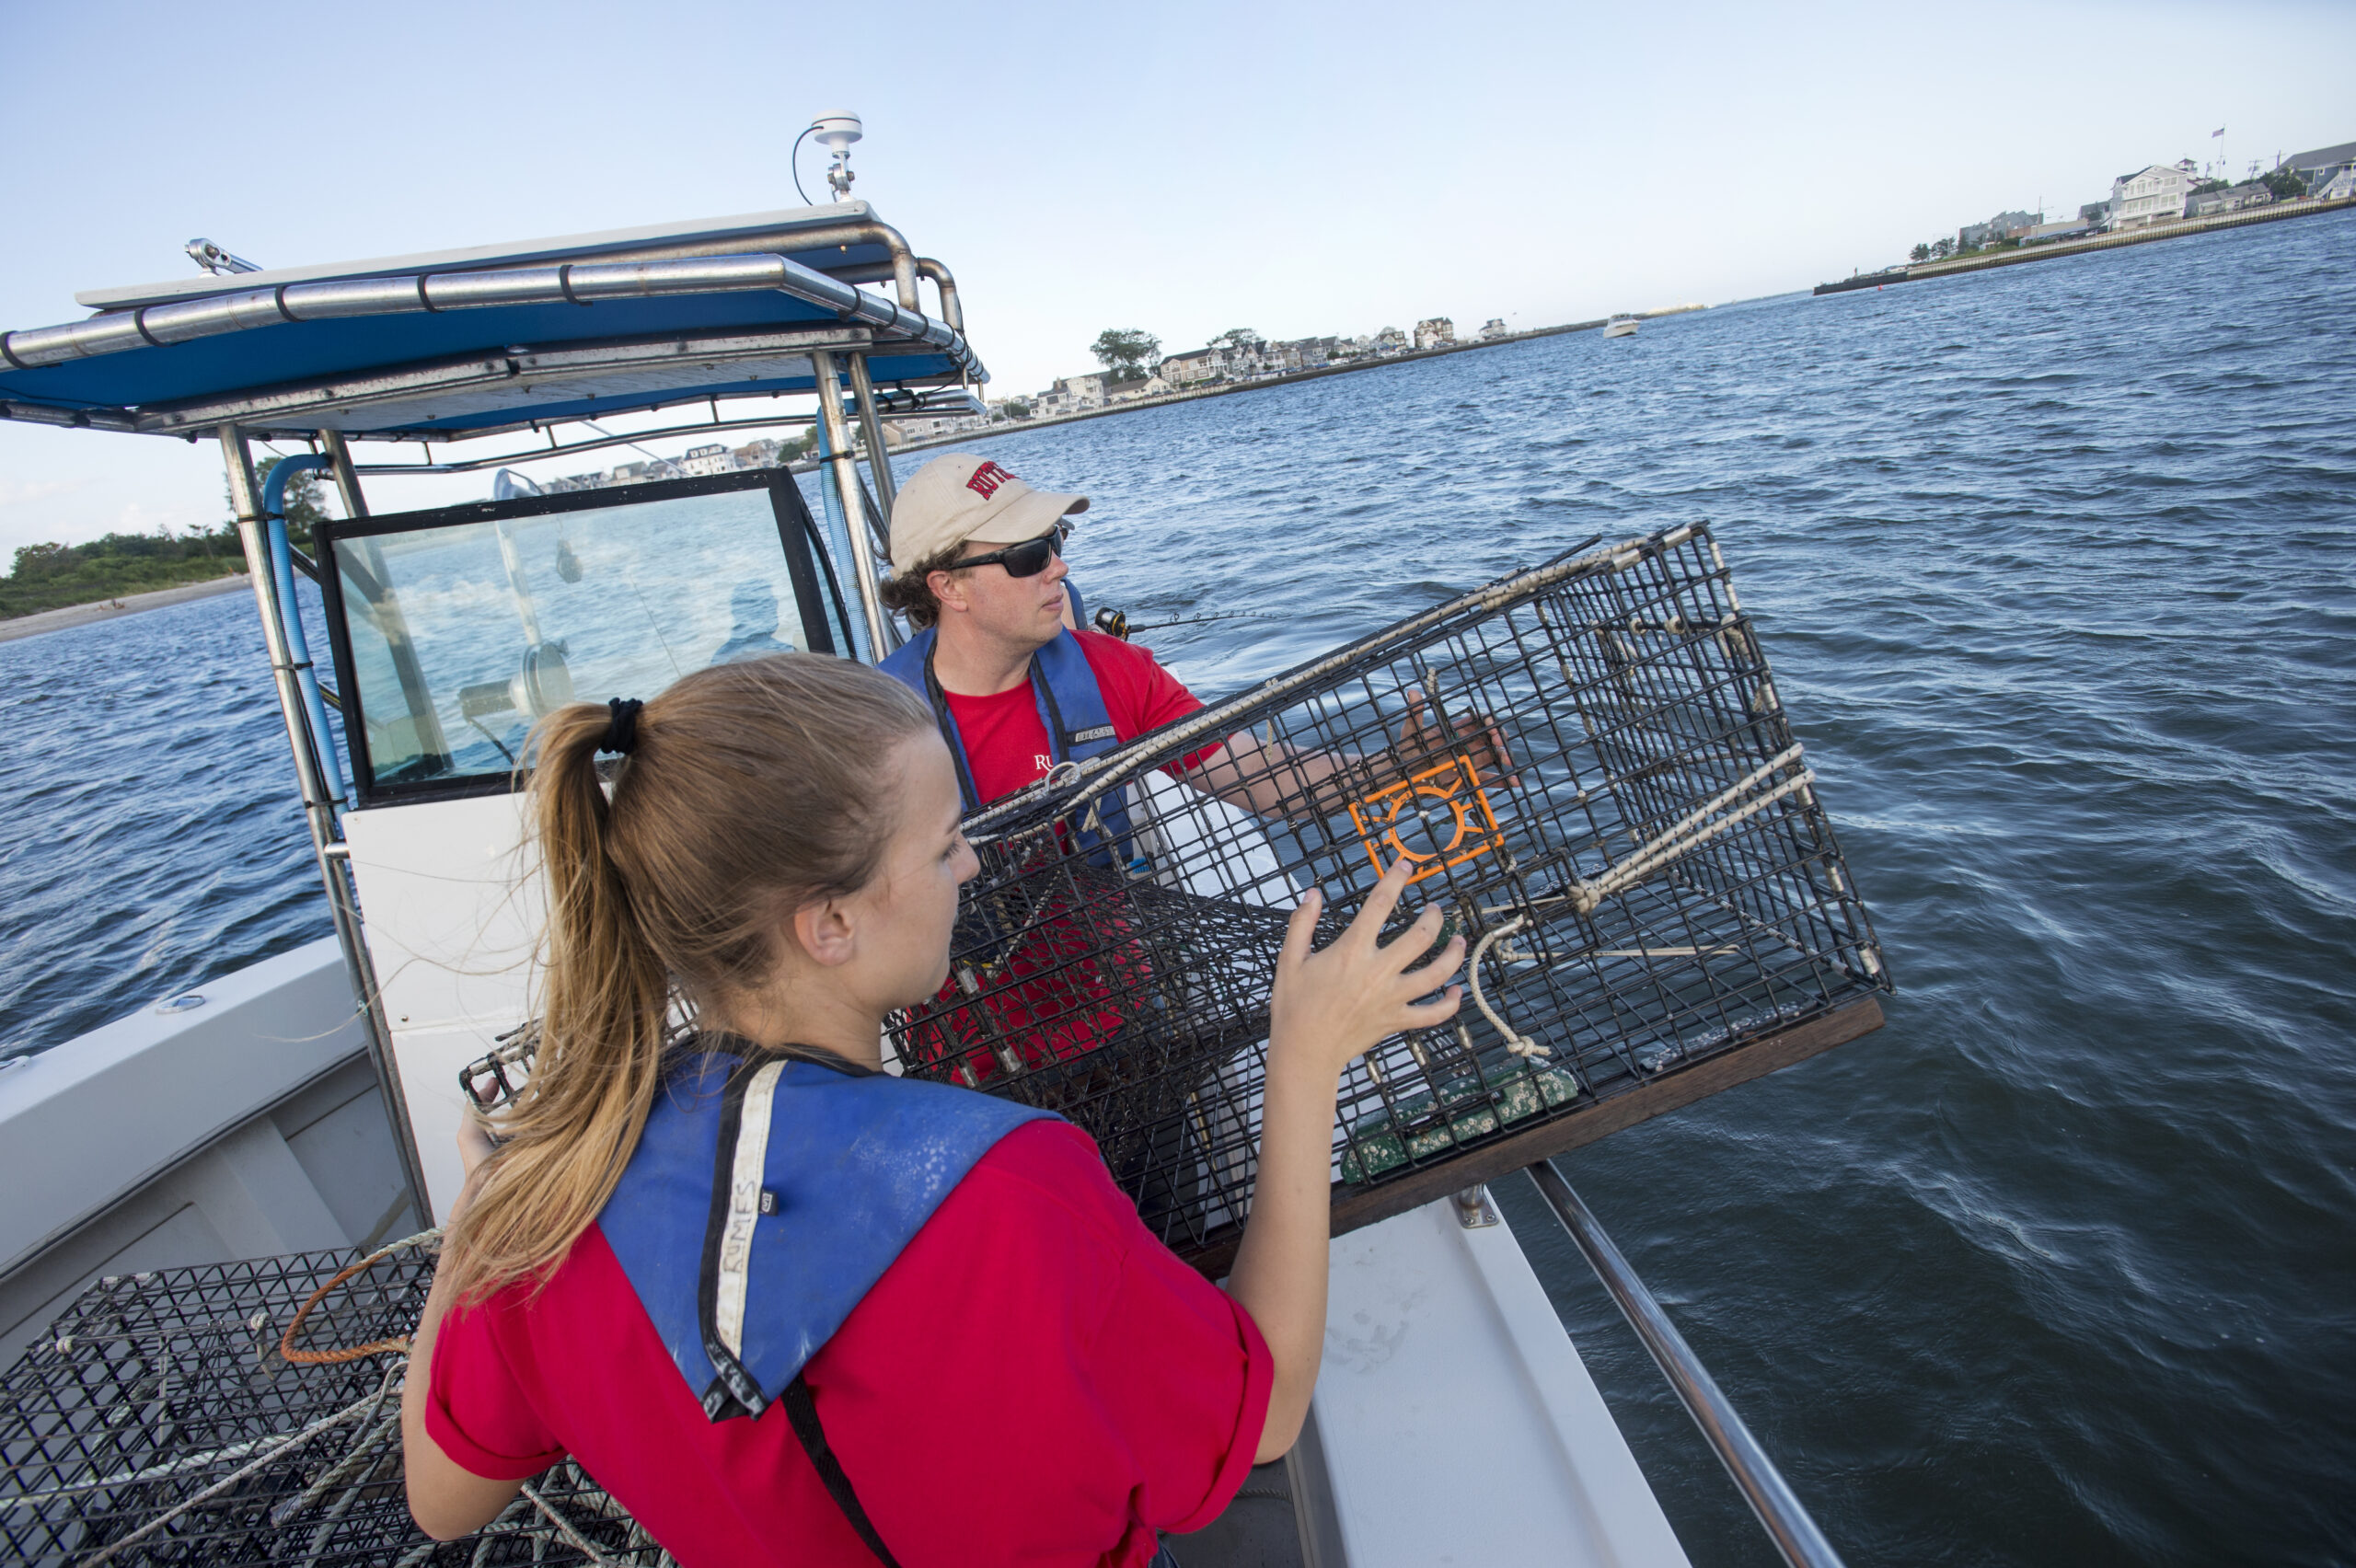 DMCS associate professor Olaf Jensen works with RIOS intern Maura Glovins (University of South Carolina'21 to lower lobster traps as part of a summer research team of faculty and undergraduate students that conduct fish and lobster monitoring